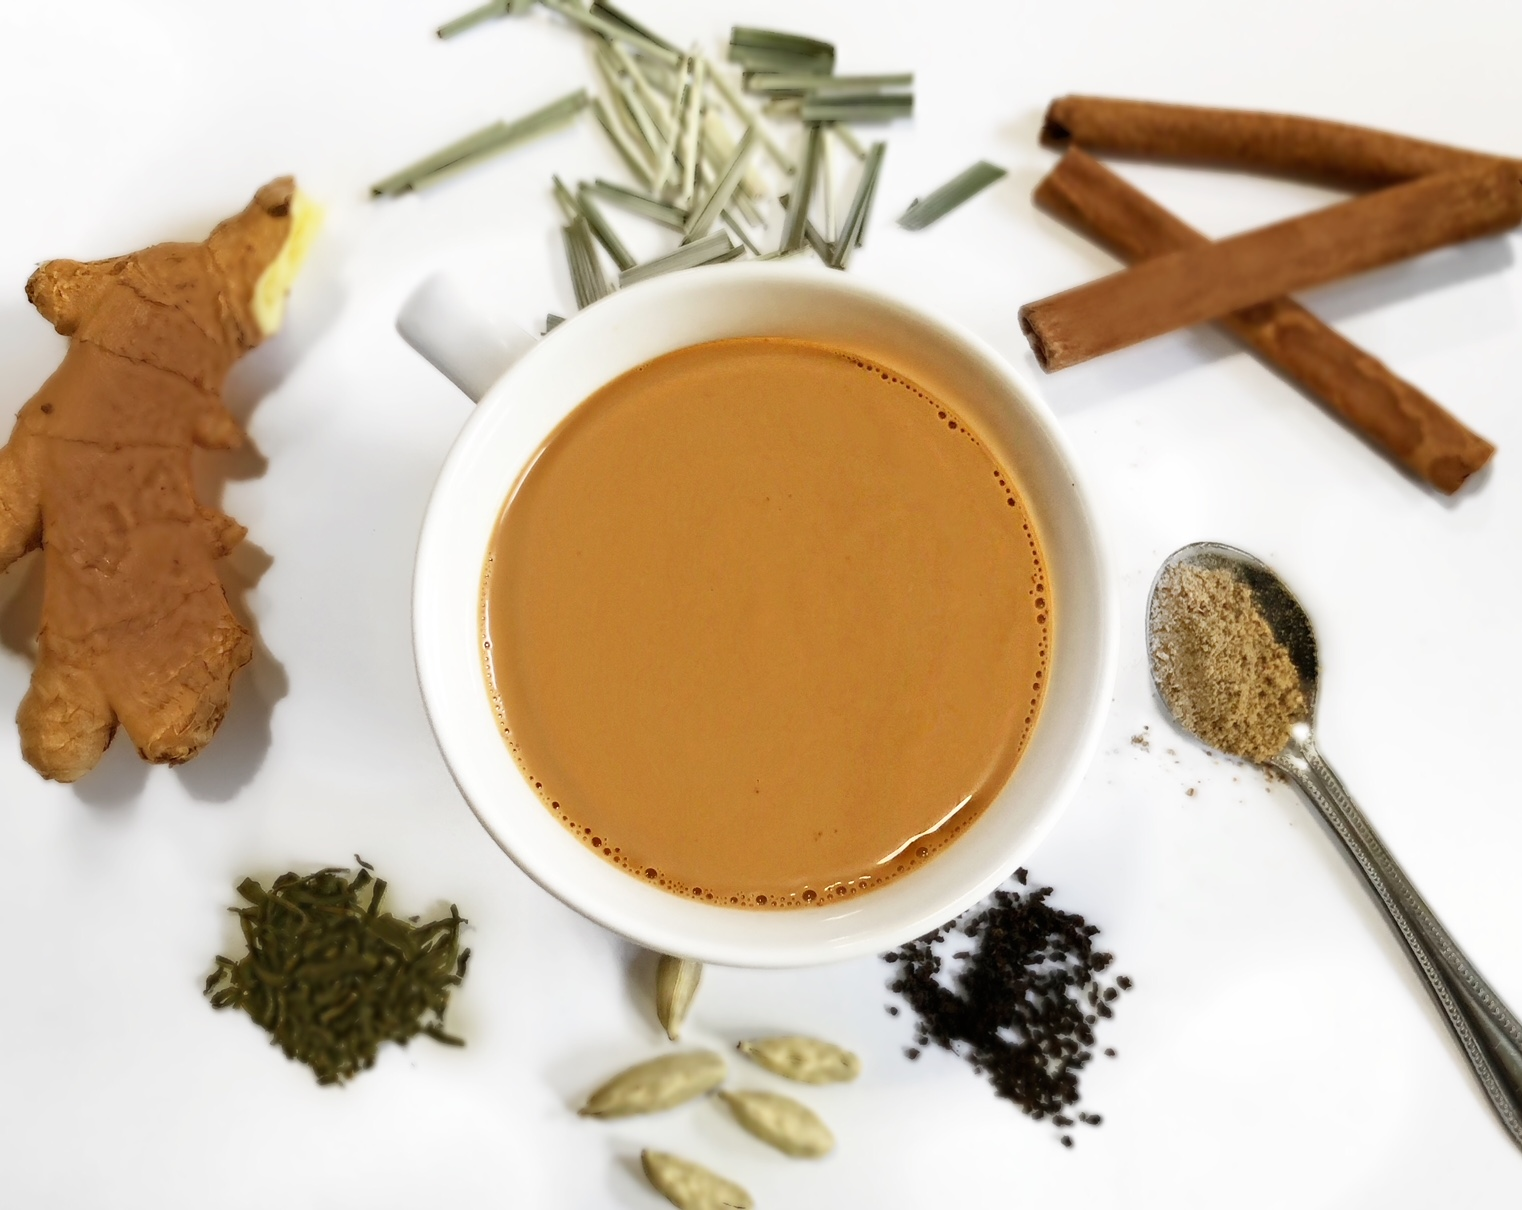 an authentic cup of chai or milk tea surrounded by spices and ginger root.